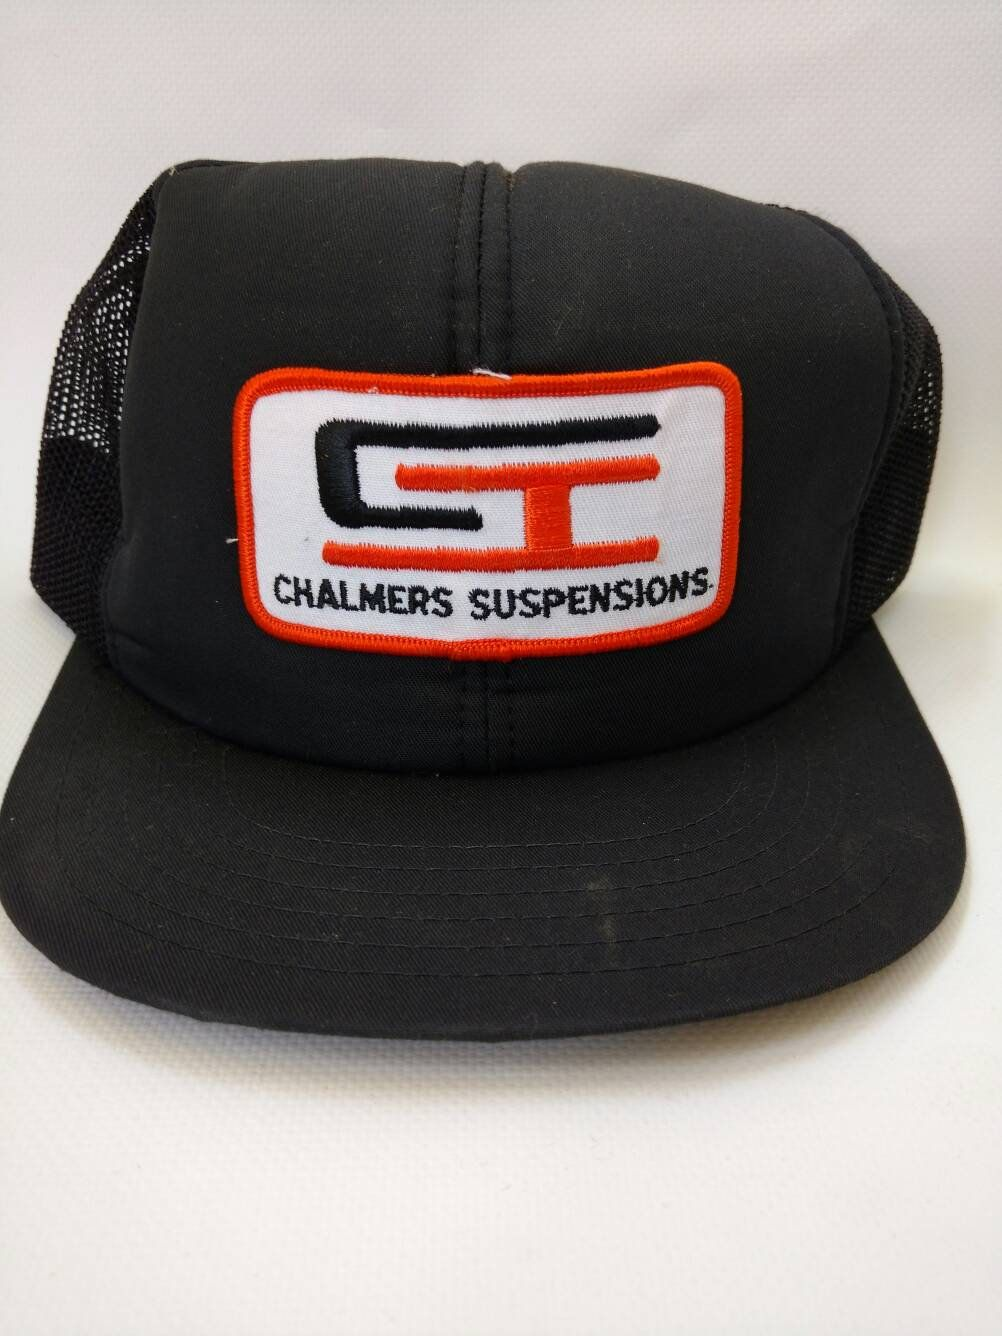 5209826cdcc Vintage Mesh Trucker Hat Chalmers Suspensions 1980s Snapback Cap by  RockabillyPinUps on Etsy